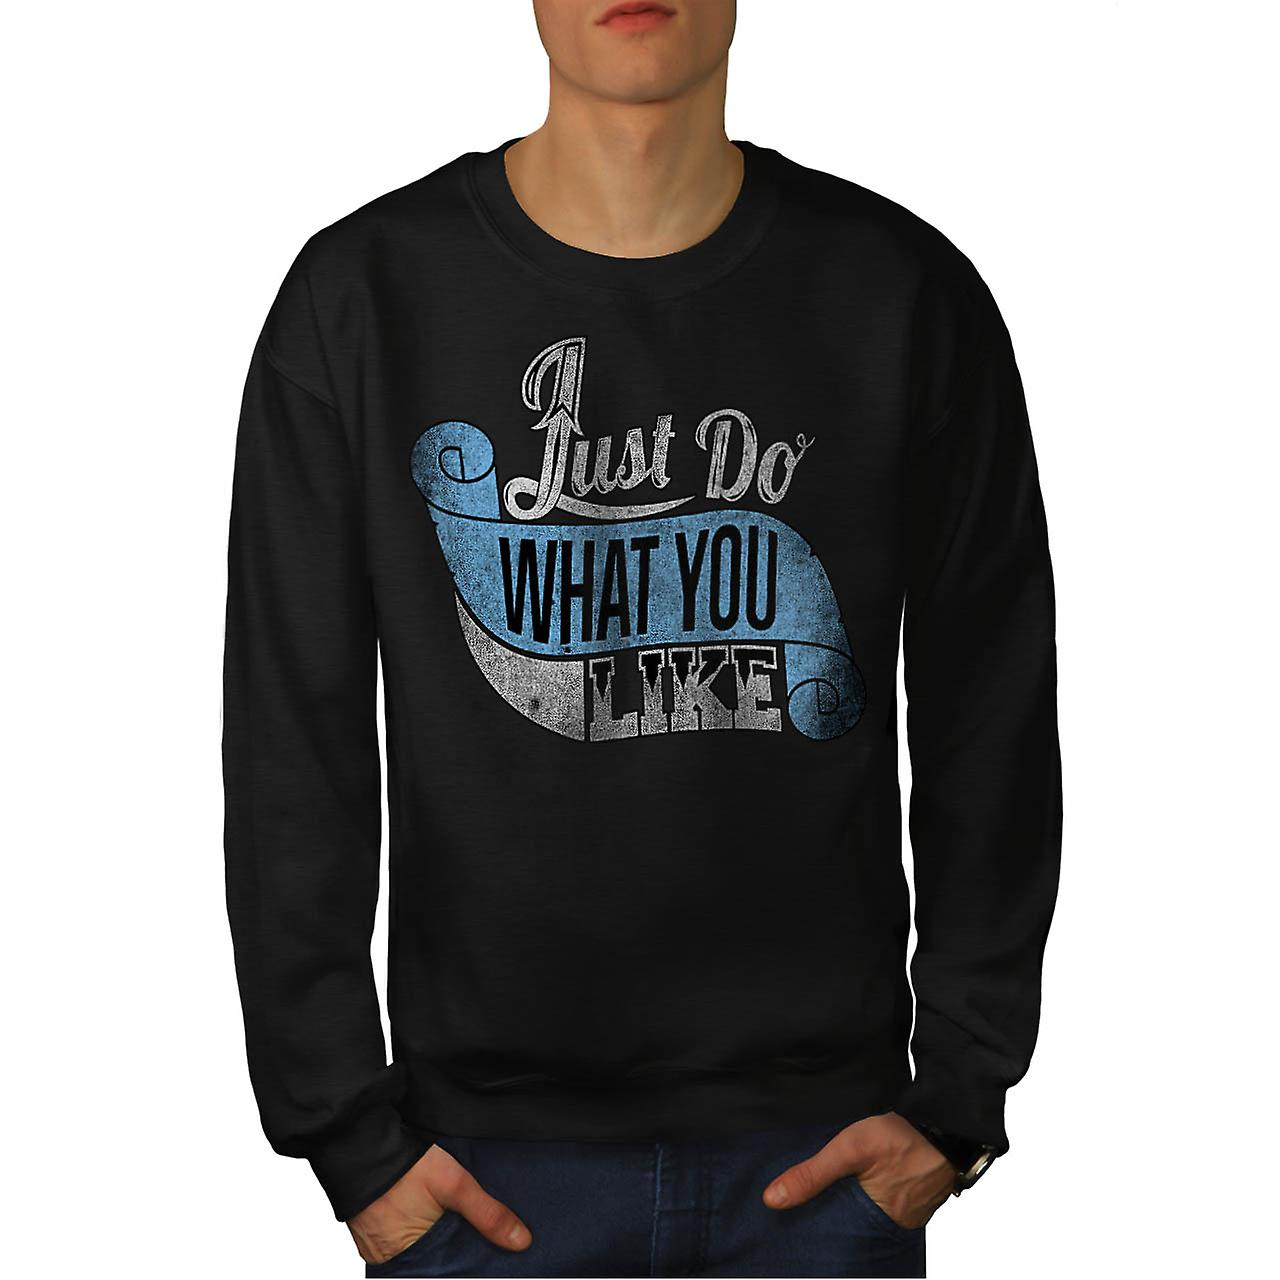 Do What You Like Slogan Enjoy Life Men Black Sweatshirt | Wellcoda